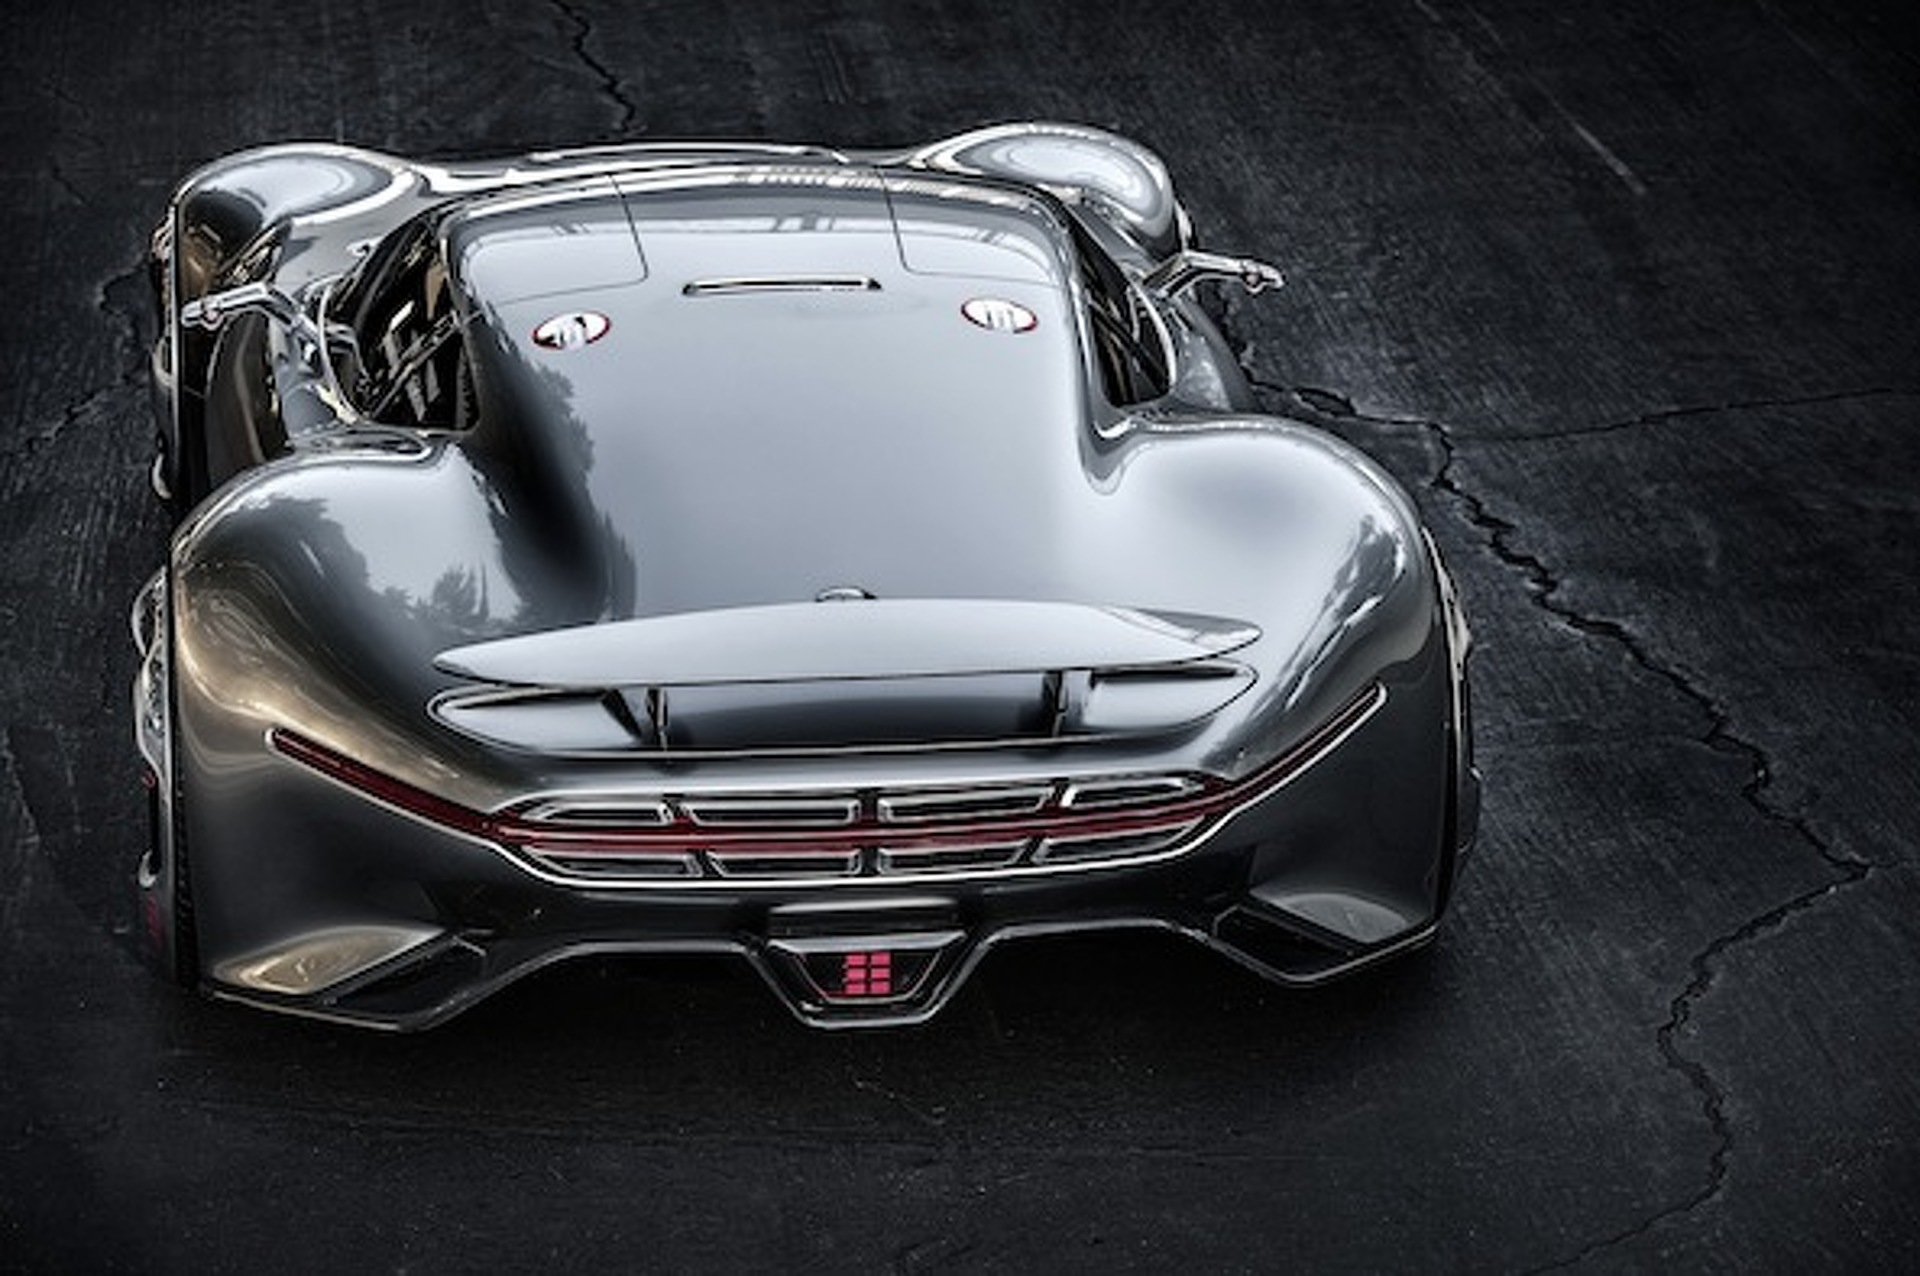 Mercedes AMG Vision Gran Turismo: Germany's Virtual Supercar